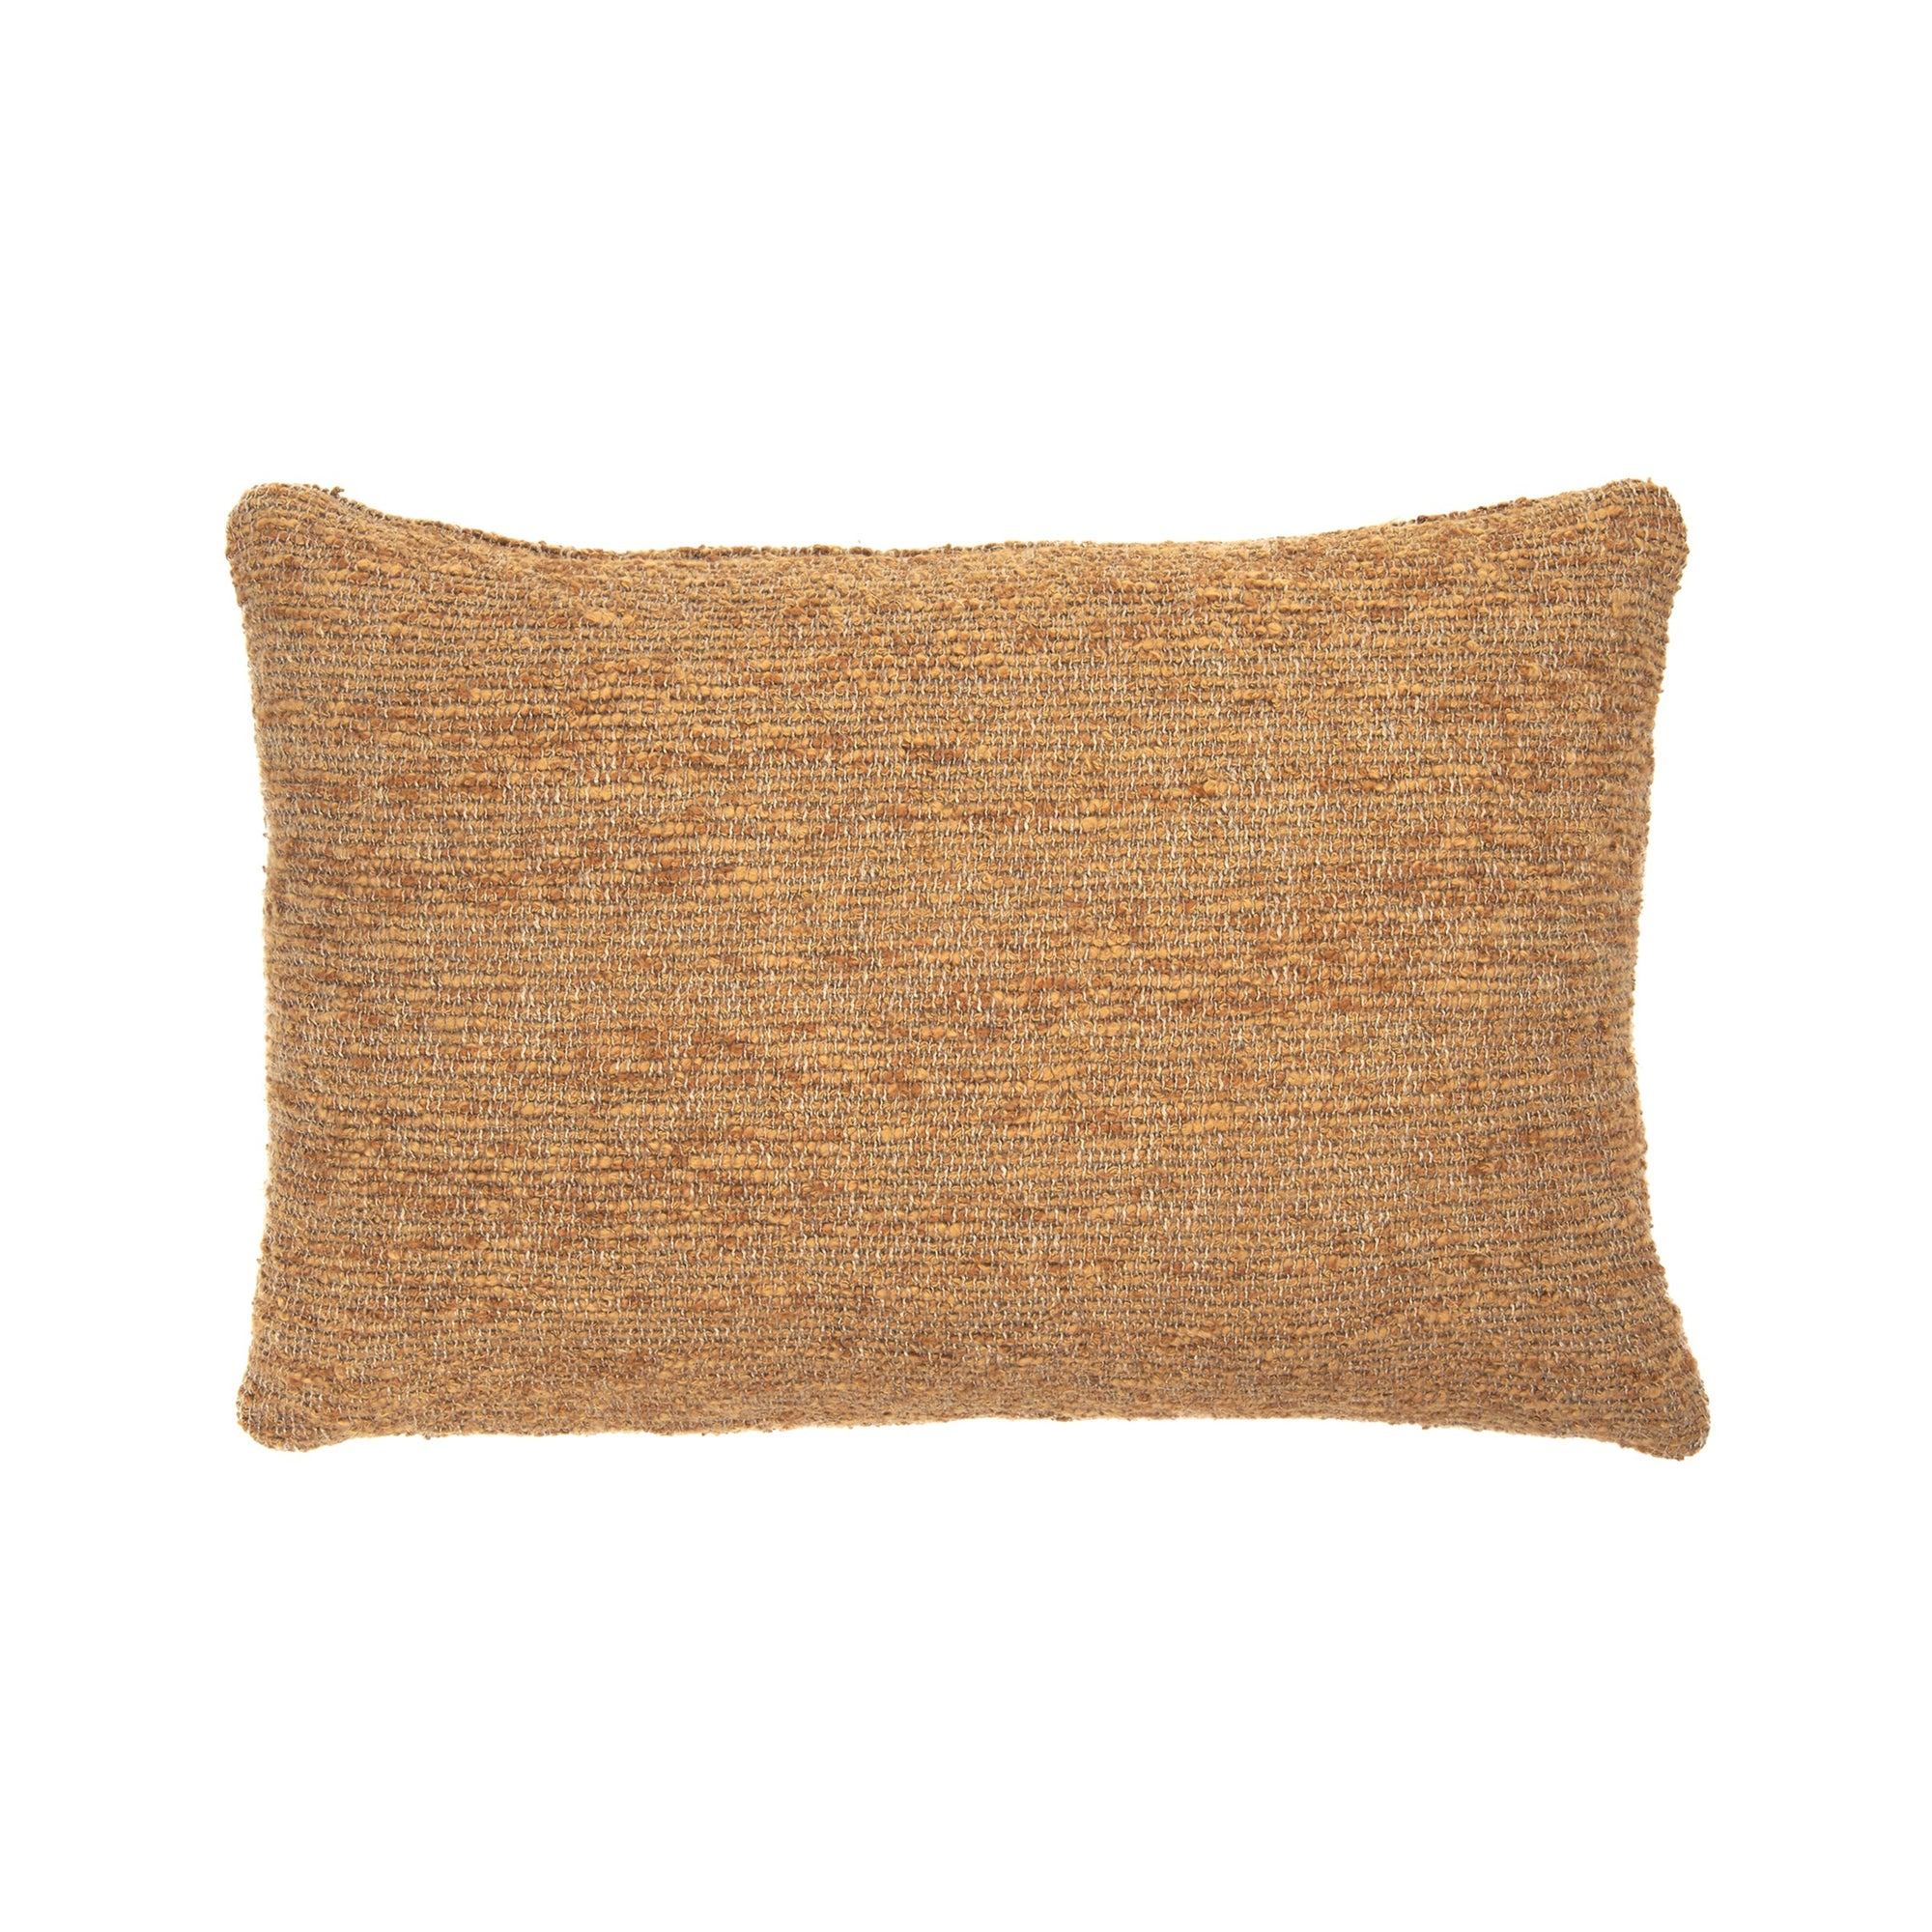 Camel Nomad cushion